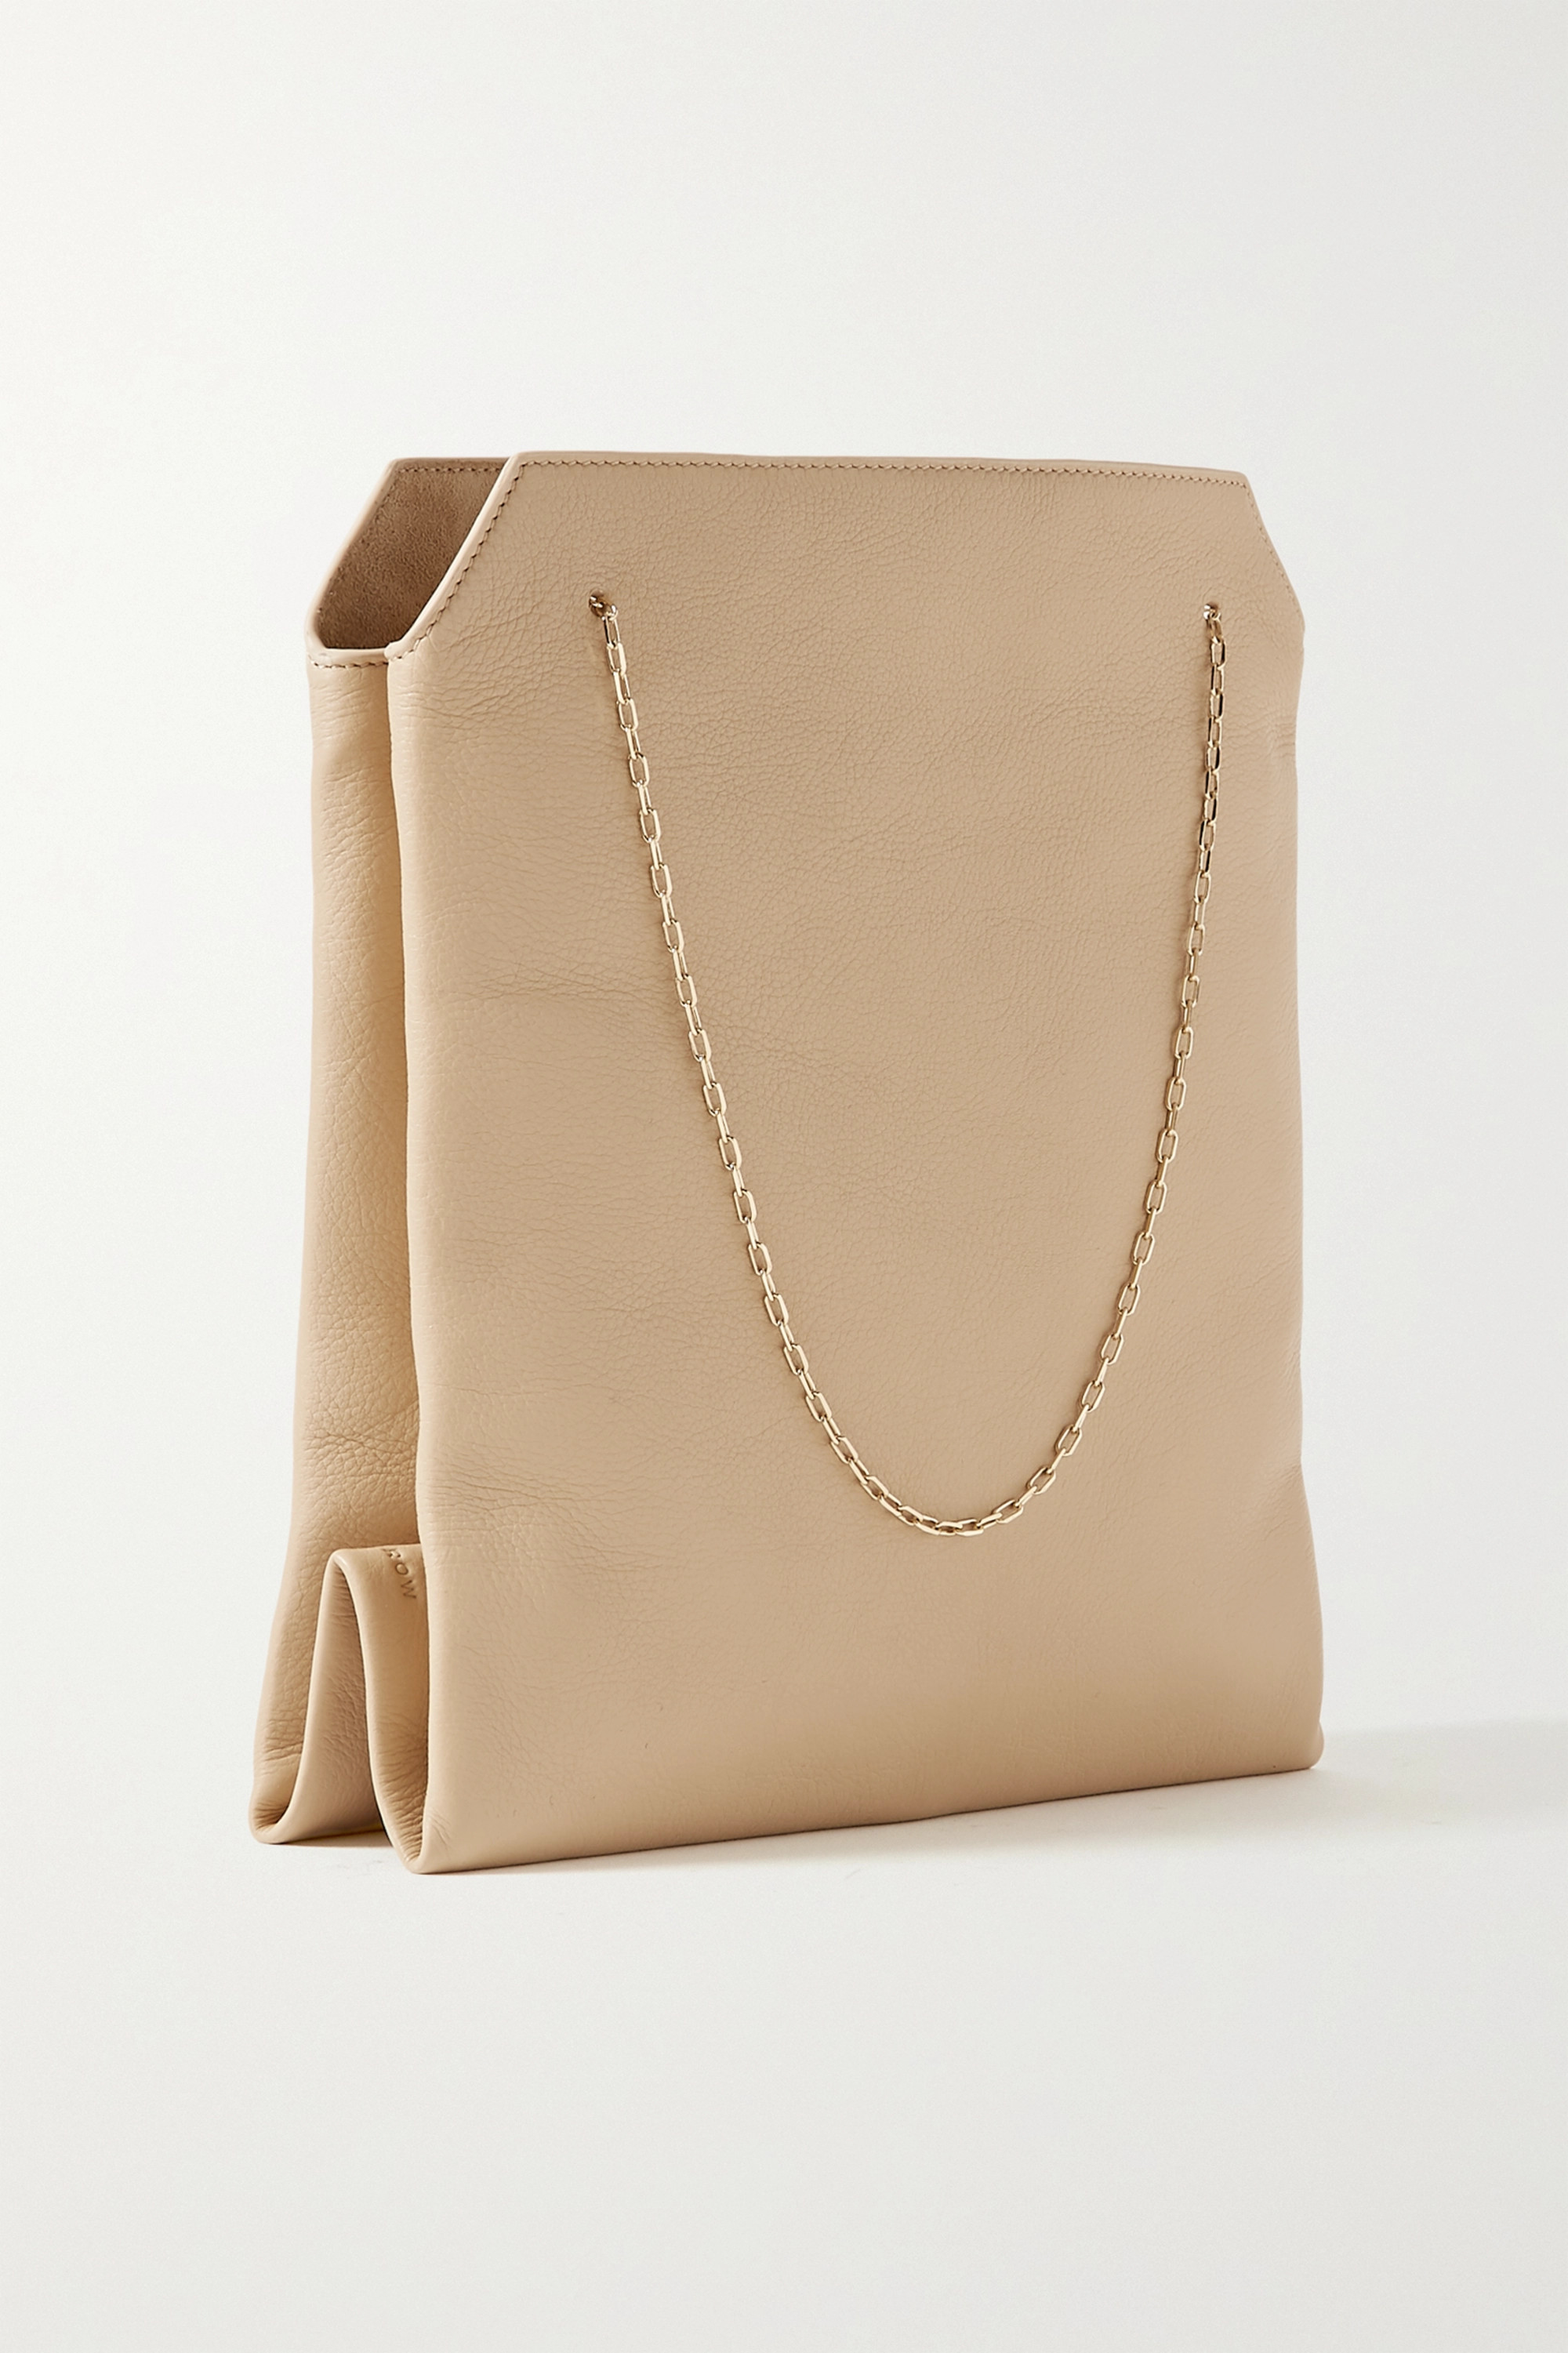 The Row Lunch Bag small leather tote